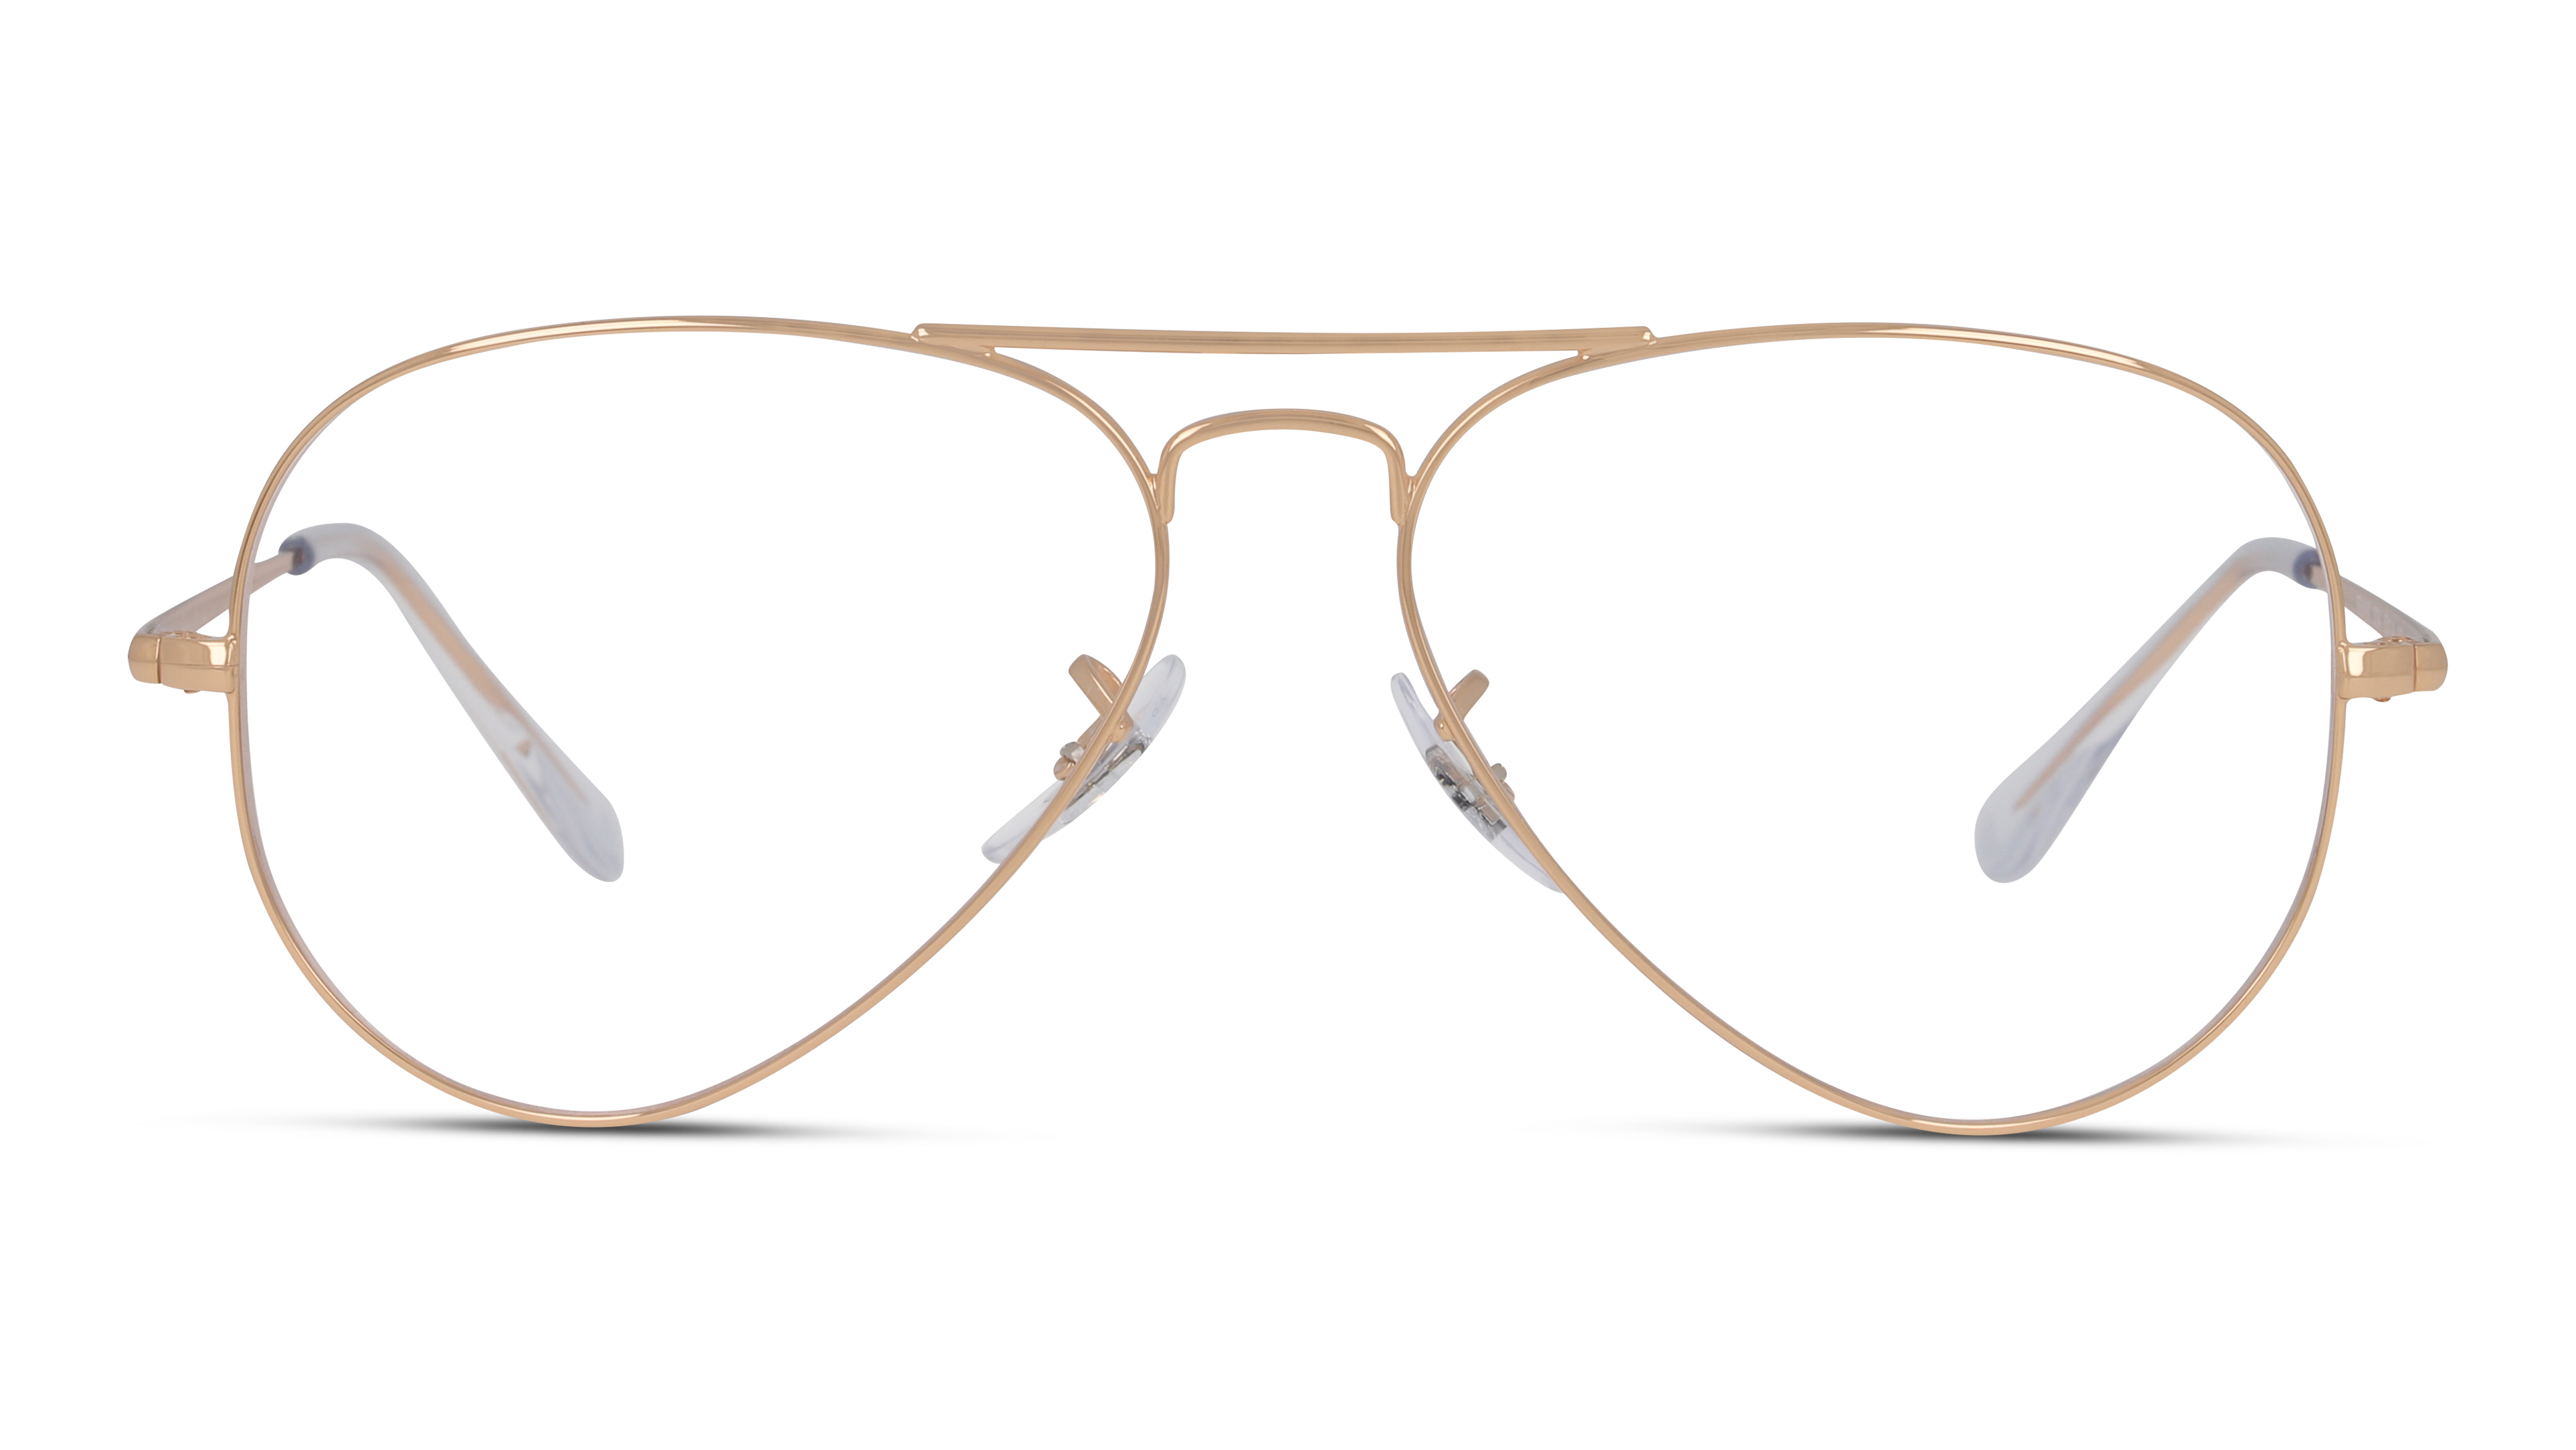 Front Ray-Ban Ray-Ban 0RX6489 3094 57/14 Roze, Goud